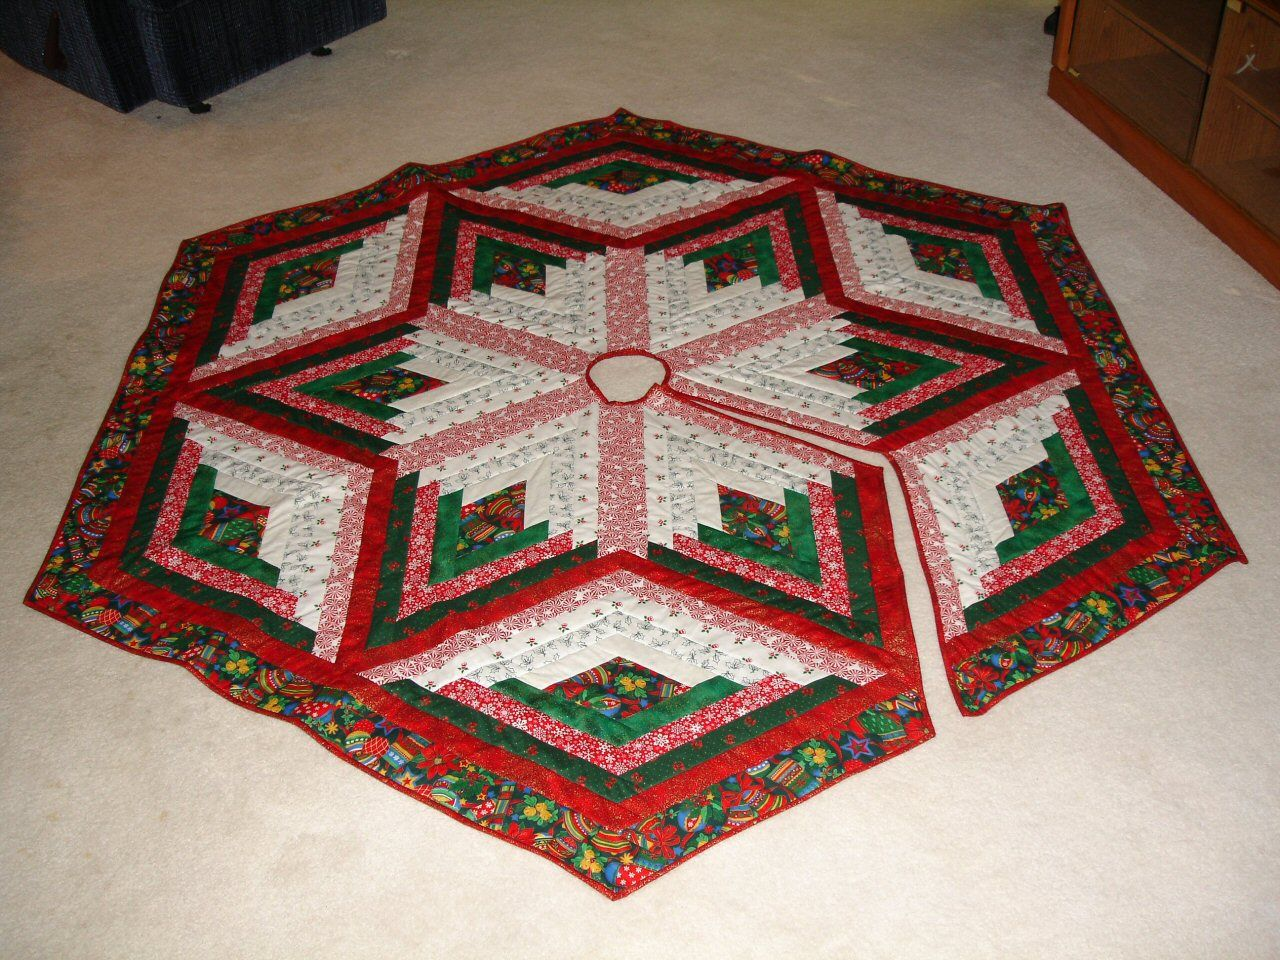 Quilt Tree Skirt Patterns My Patterns Christmas Tree Skirts Patterns Quilt Patterns Tree Skirt Pattern